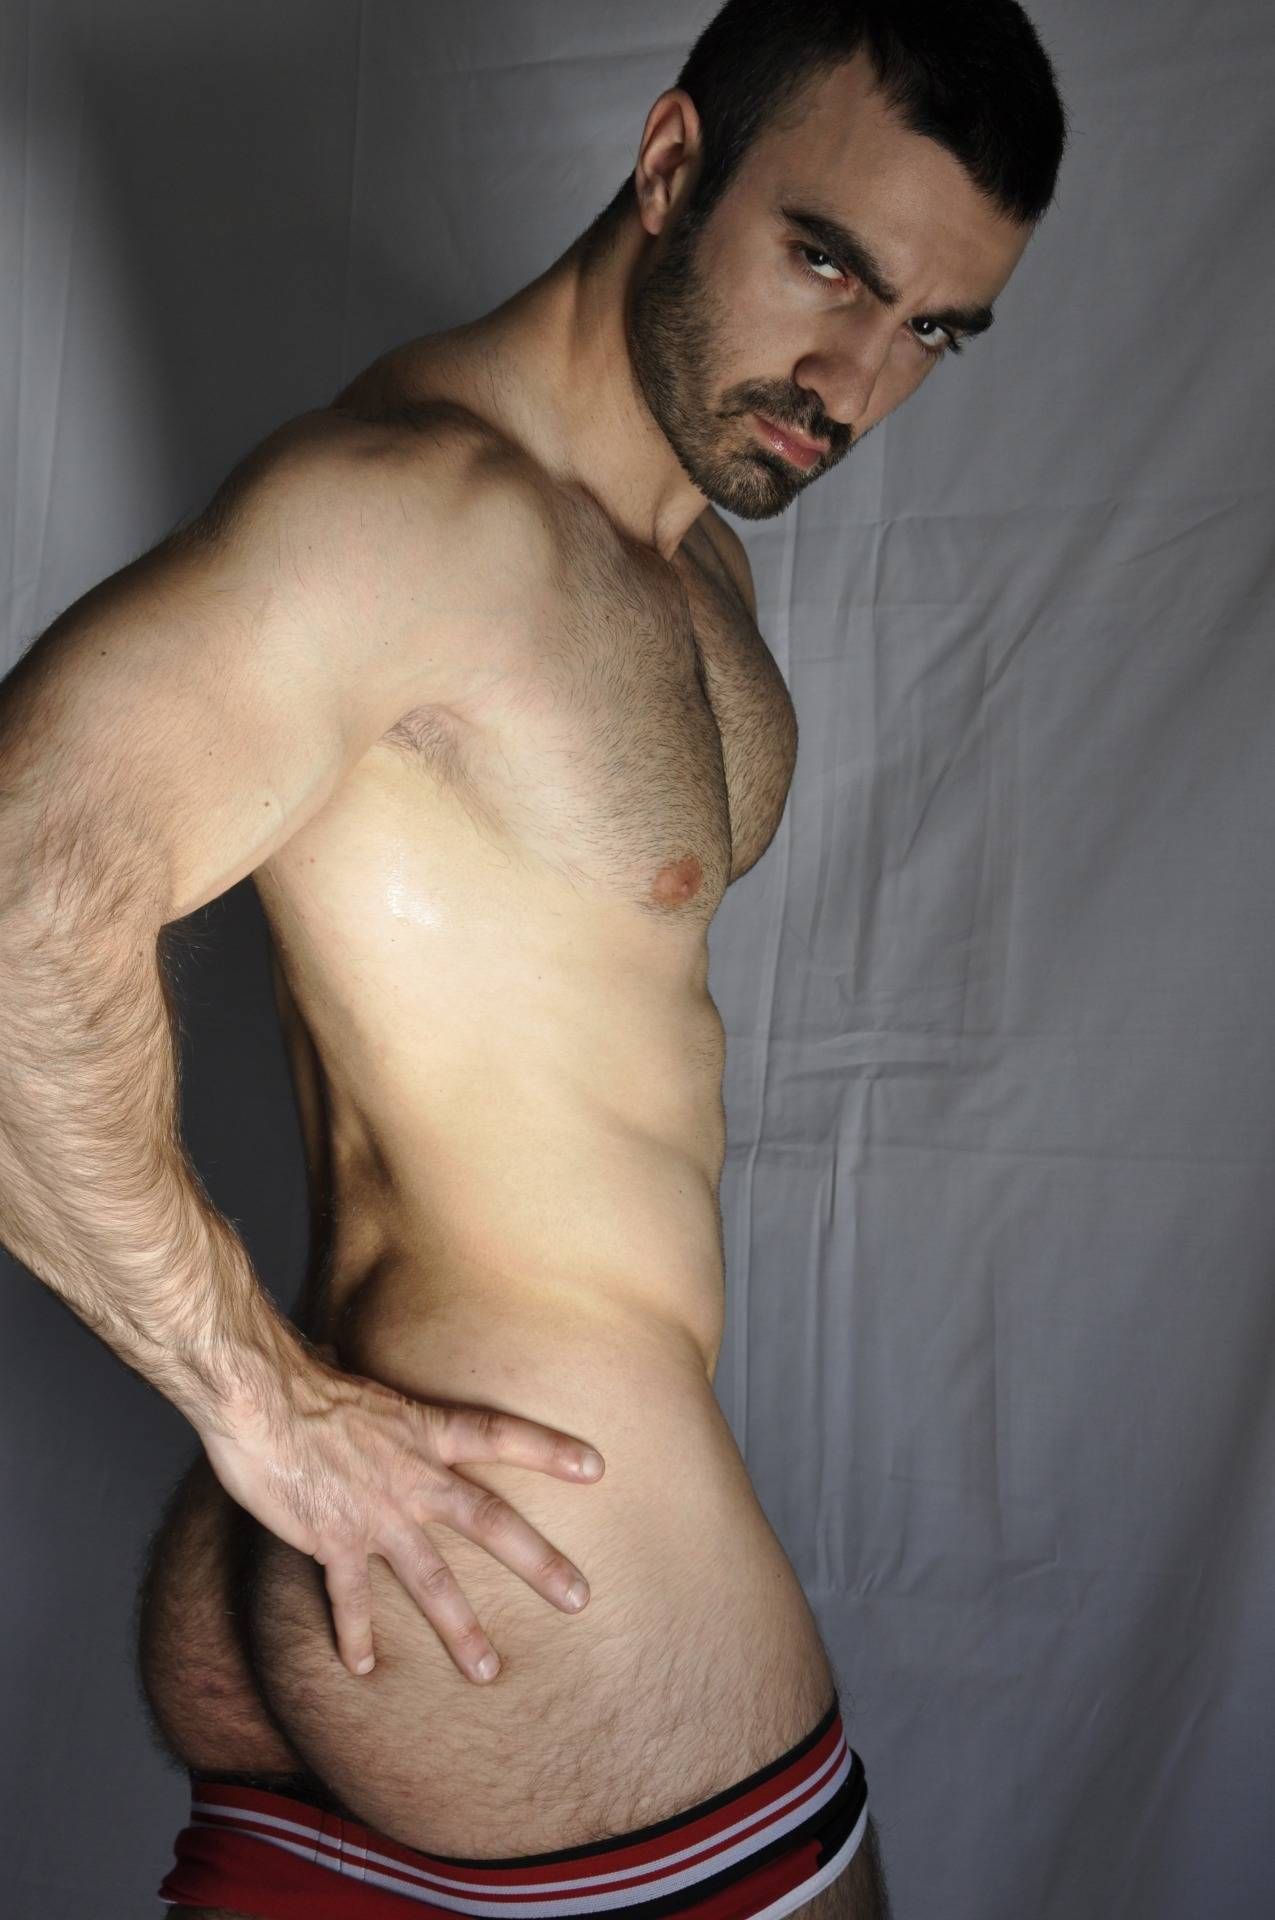 Ass gay hairy handsome naked